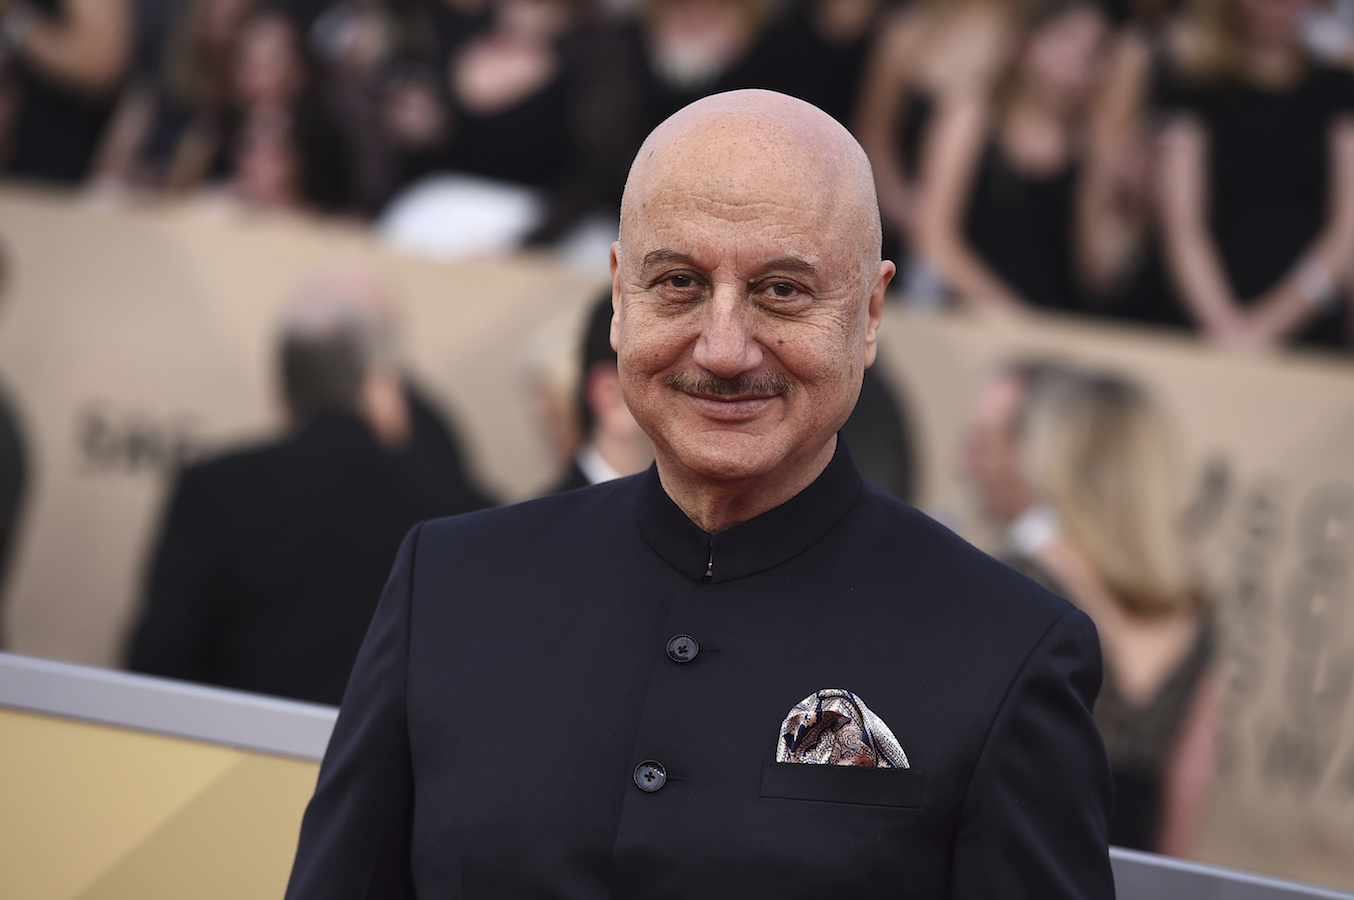 <div class='meta'><div class='origin-logo' data-origin='AP'></div><span class='caption-text' data-credit='Jordan Strauss/Invision/AP'>Anupam Kher arrives at the 24th annual Screen Actors Guild Awards at the Shrine Auditorium & Expo Hall on Sunday, Jan. 21, 2018, in Los Angeles.</span></div>